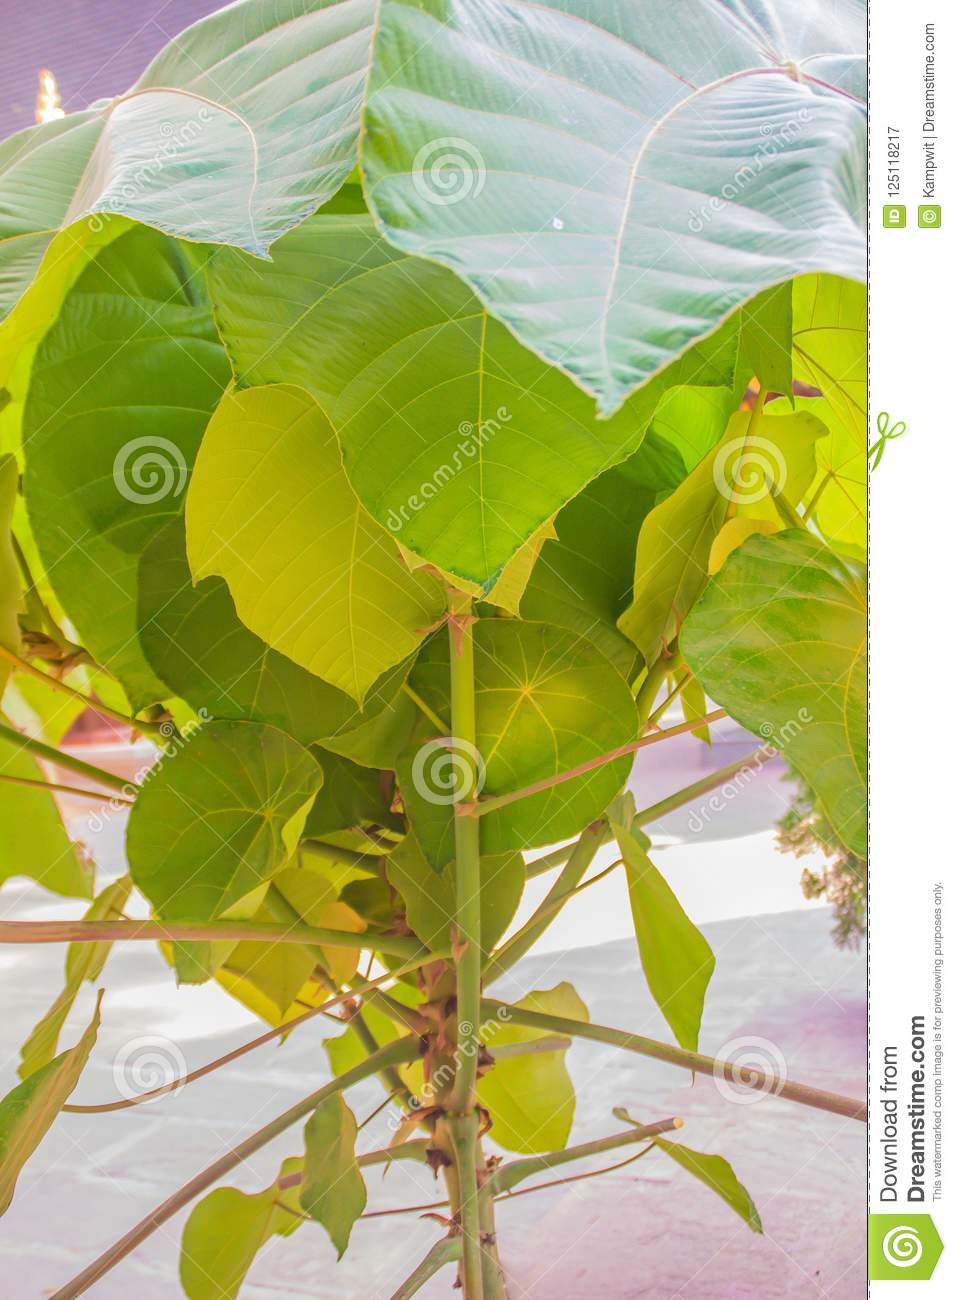 Green Huge Leaves Of Macaranga Gigantea Tree A Fast Growing Evergreen Tree Native To South East Asia The Large Leaves Contain Bi Stock Image Image Of Ferrugineus Lower 125118217